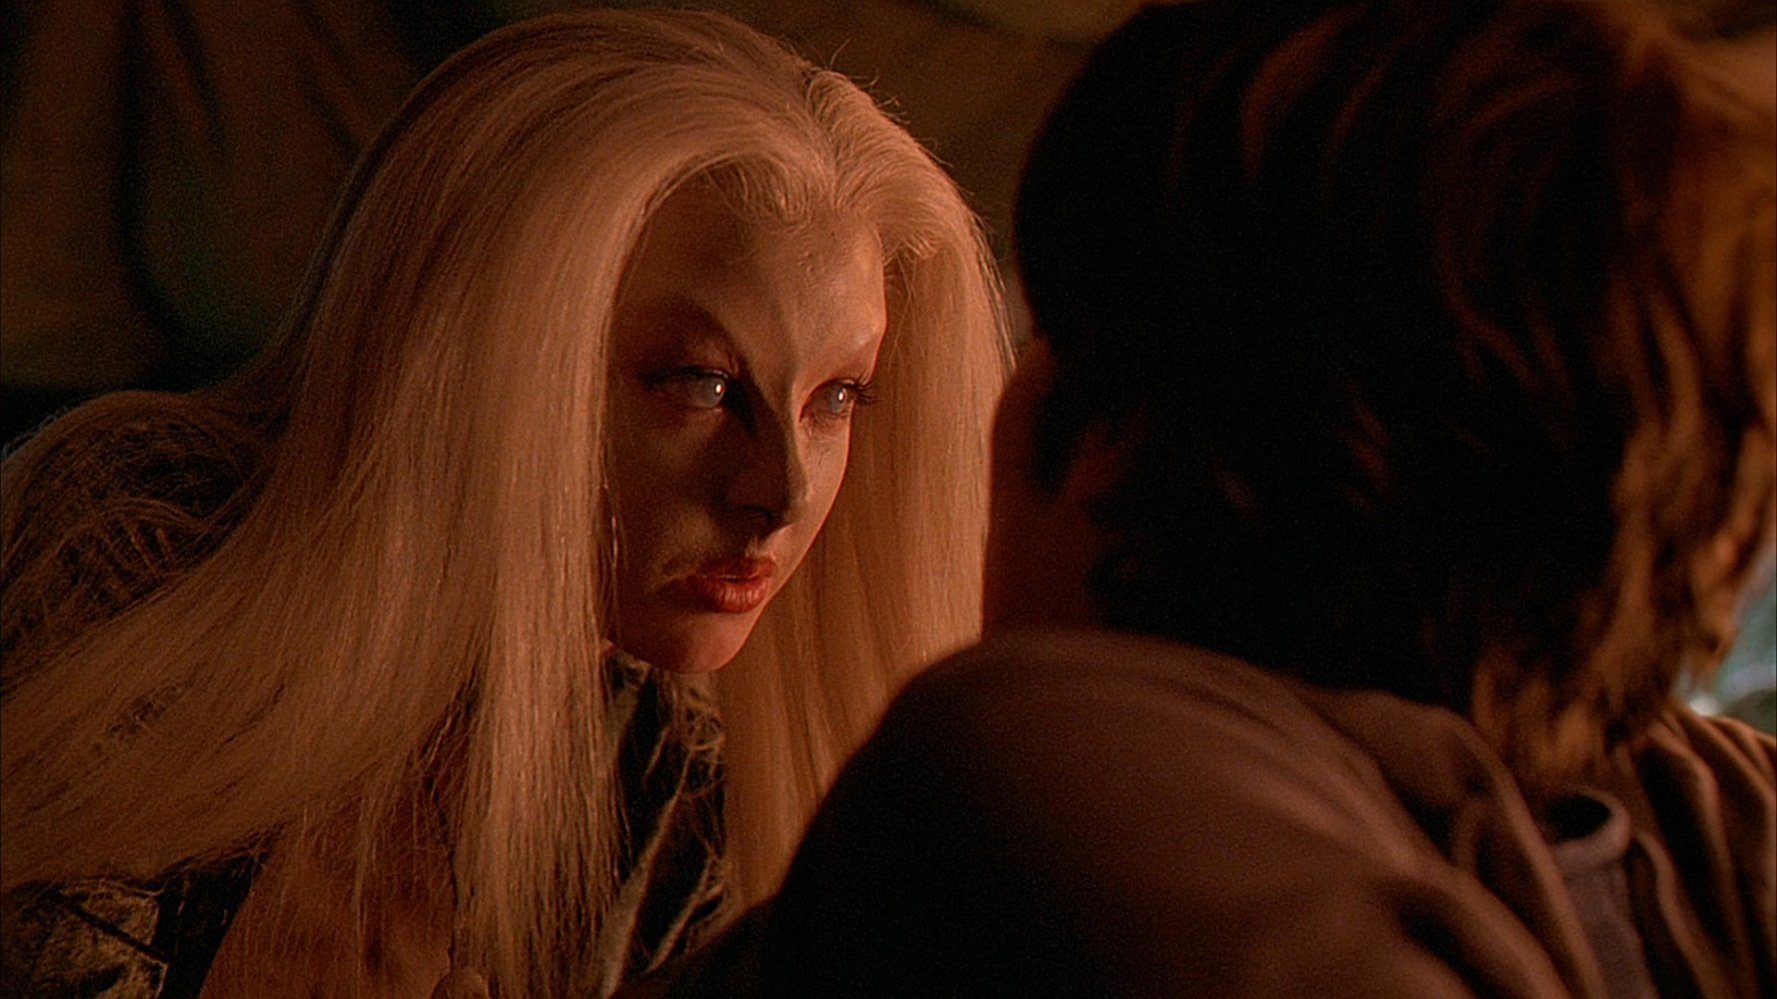 Katherine Isabelle in Ginger Snaps